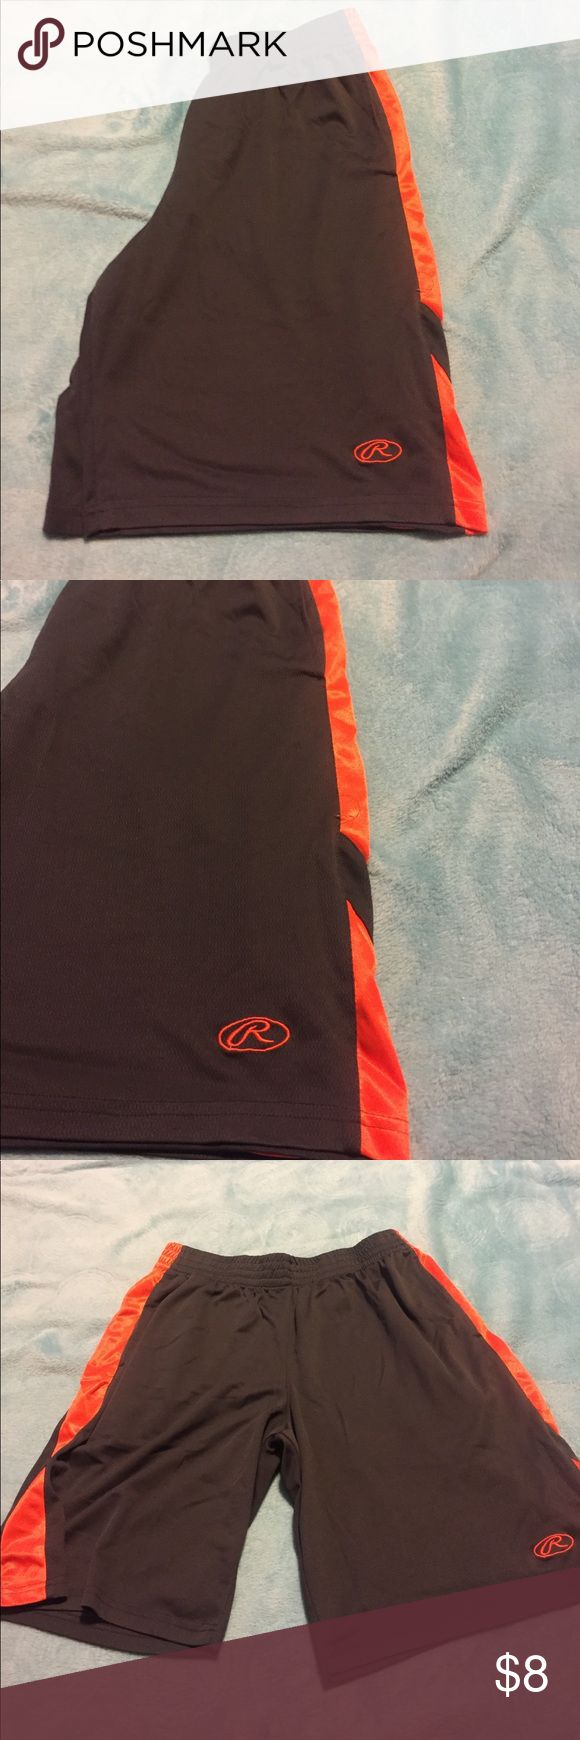 Men's gym shorts Men's gym shorts.       Gray and orange.         Size XL.      Good condition Shorts Athletic